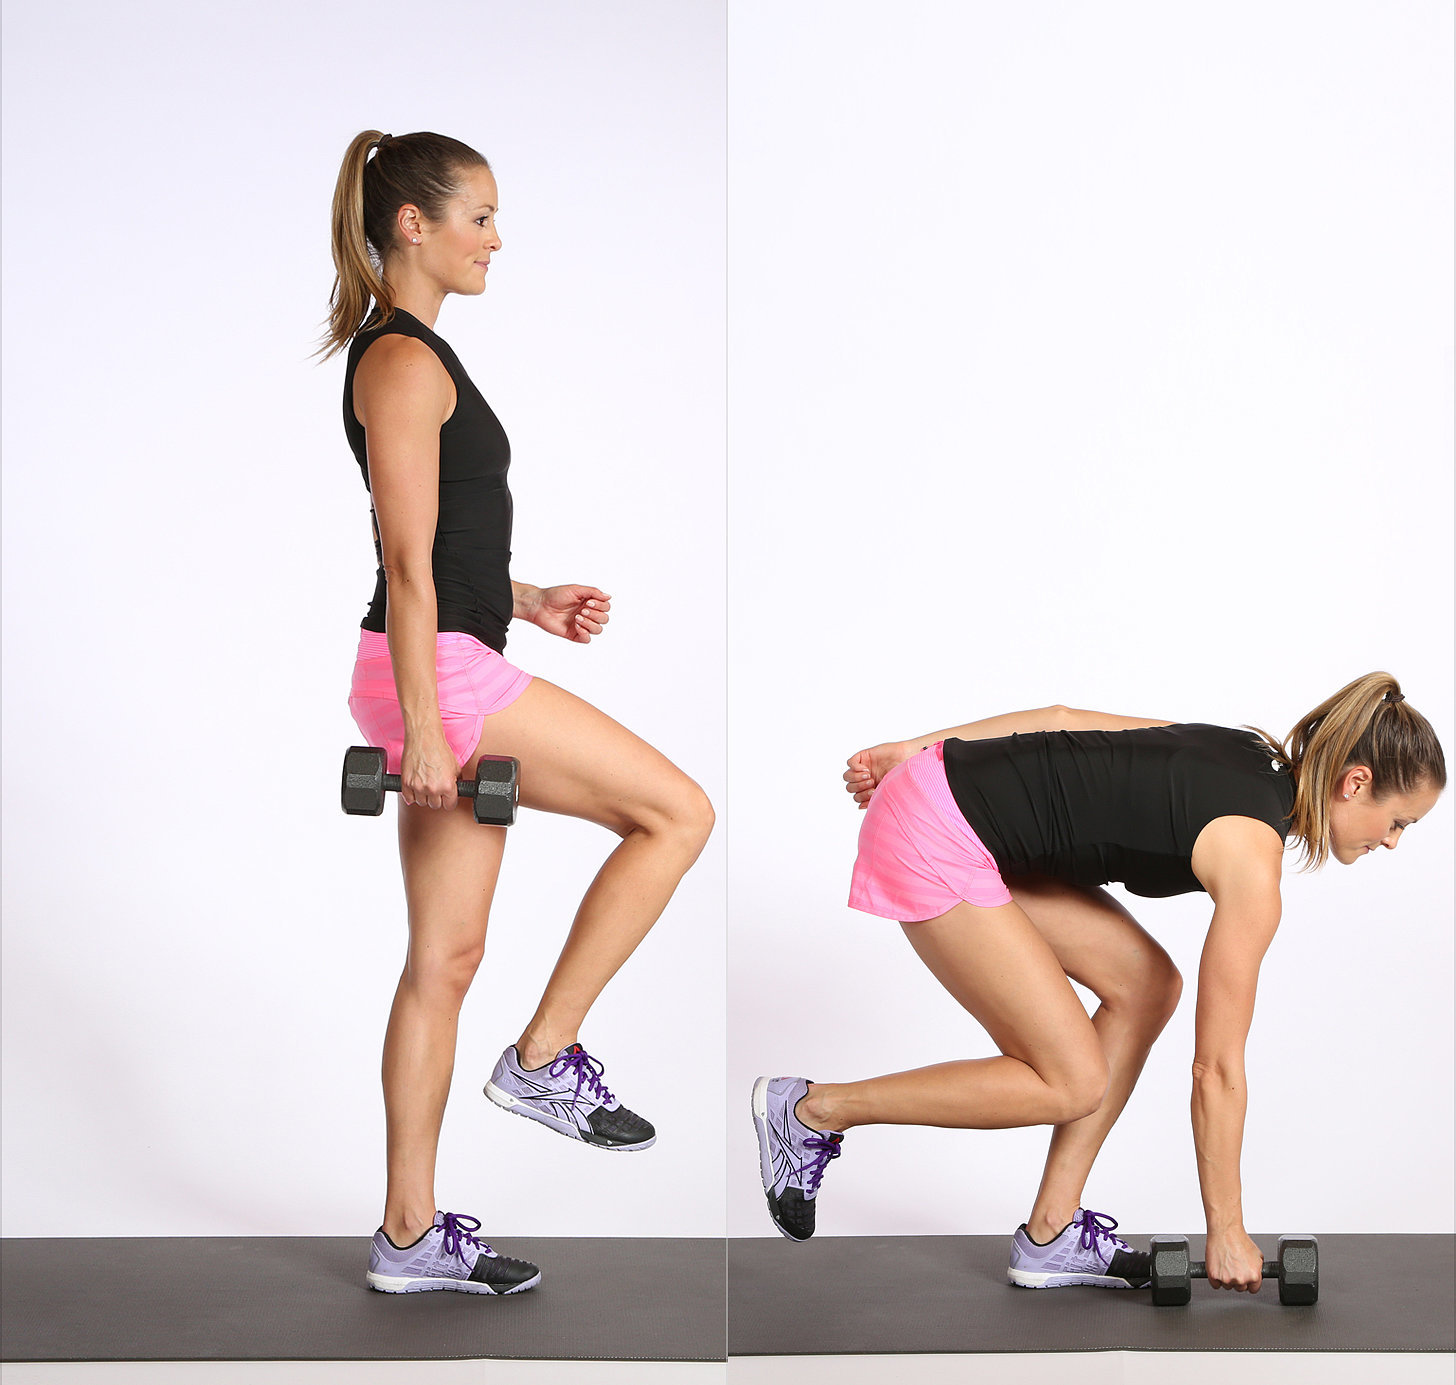 Single Leg Touch Exercise For Glutes Popsugar Fitness